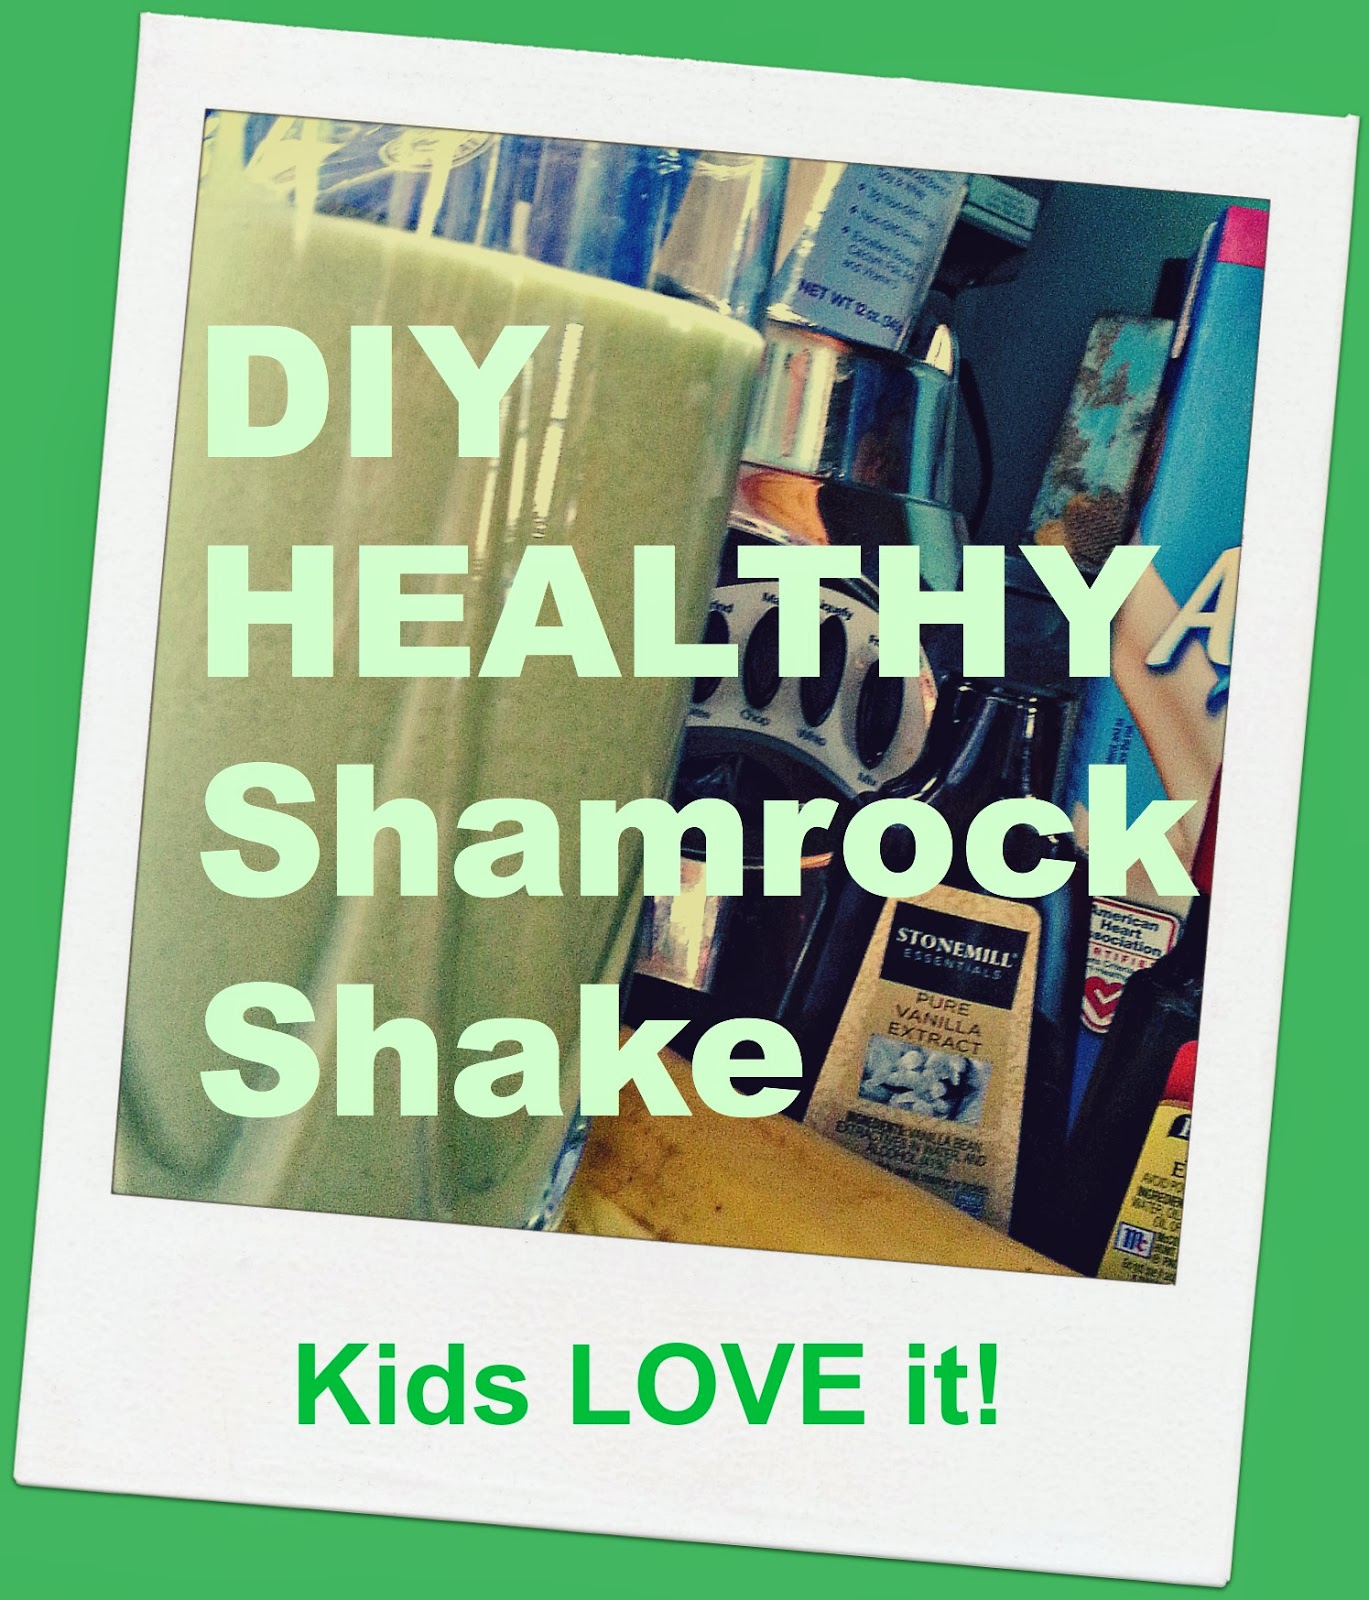 ... : Never Buy Another McDonald's Shamrock Shake AKA Kids Eat Spinach